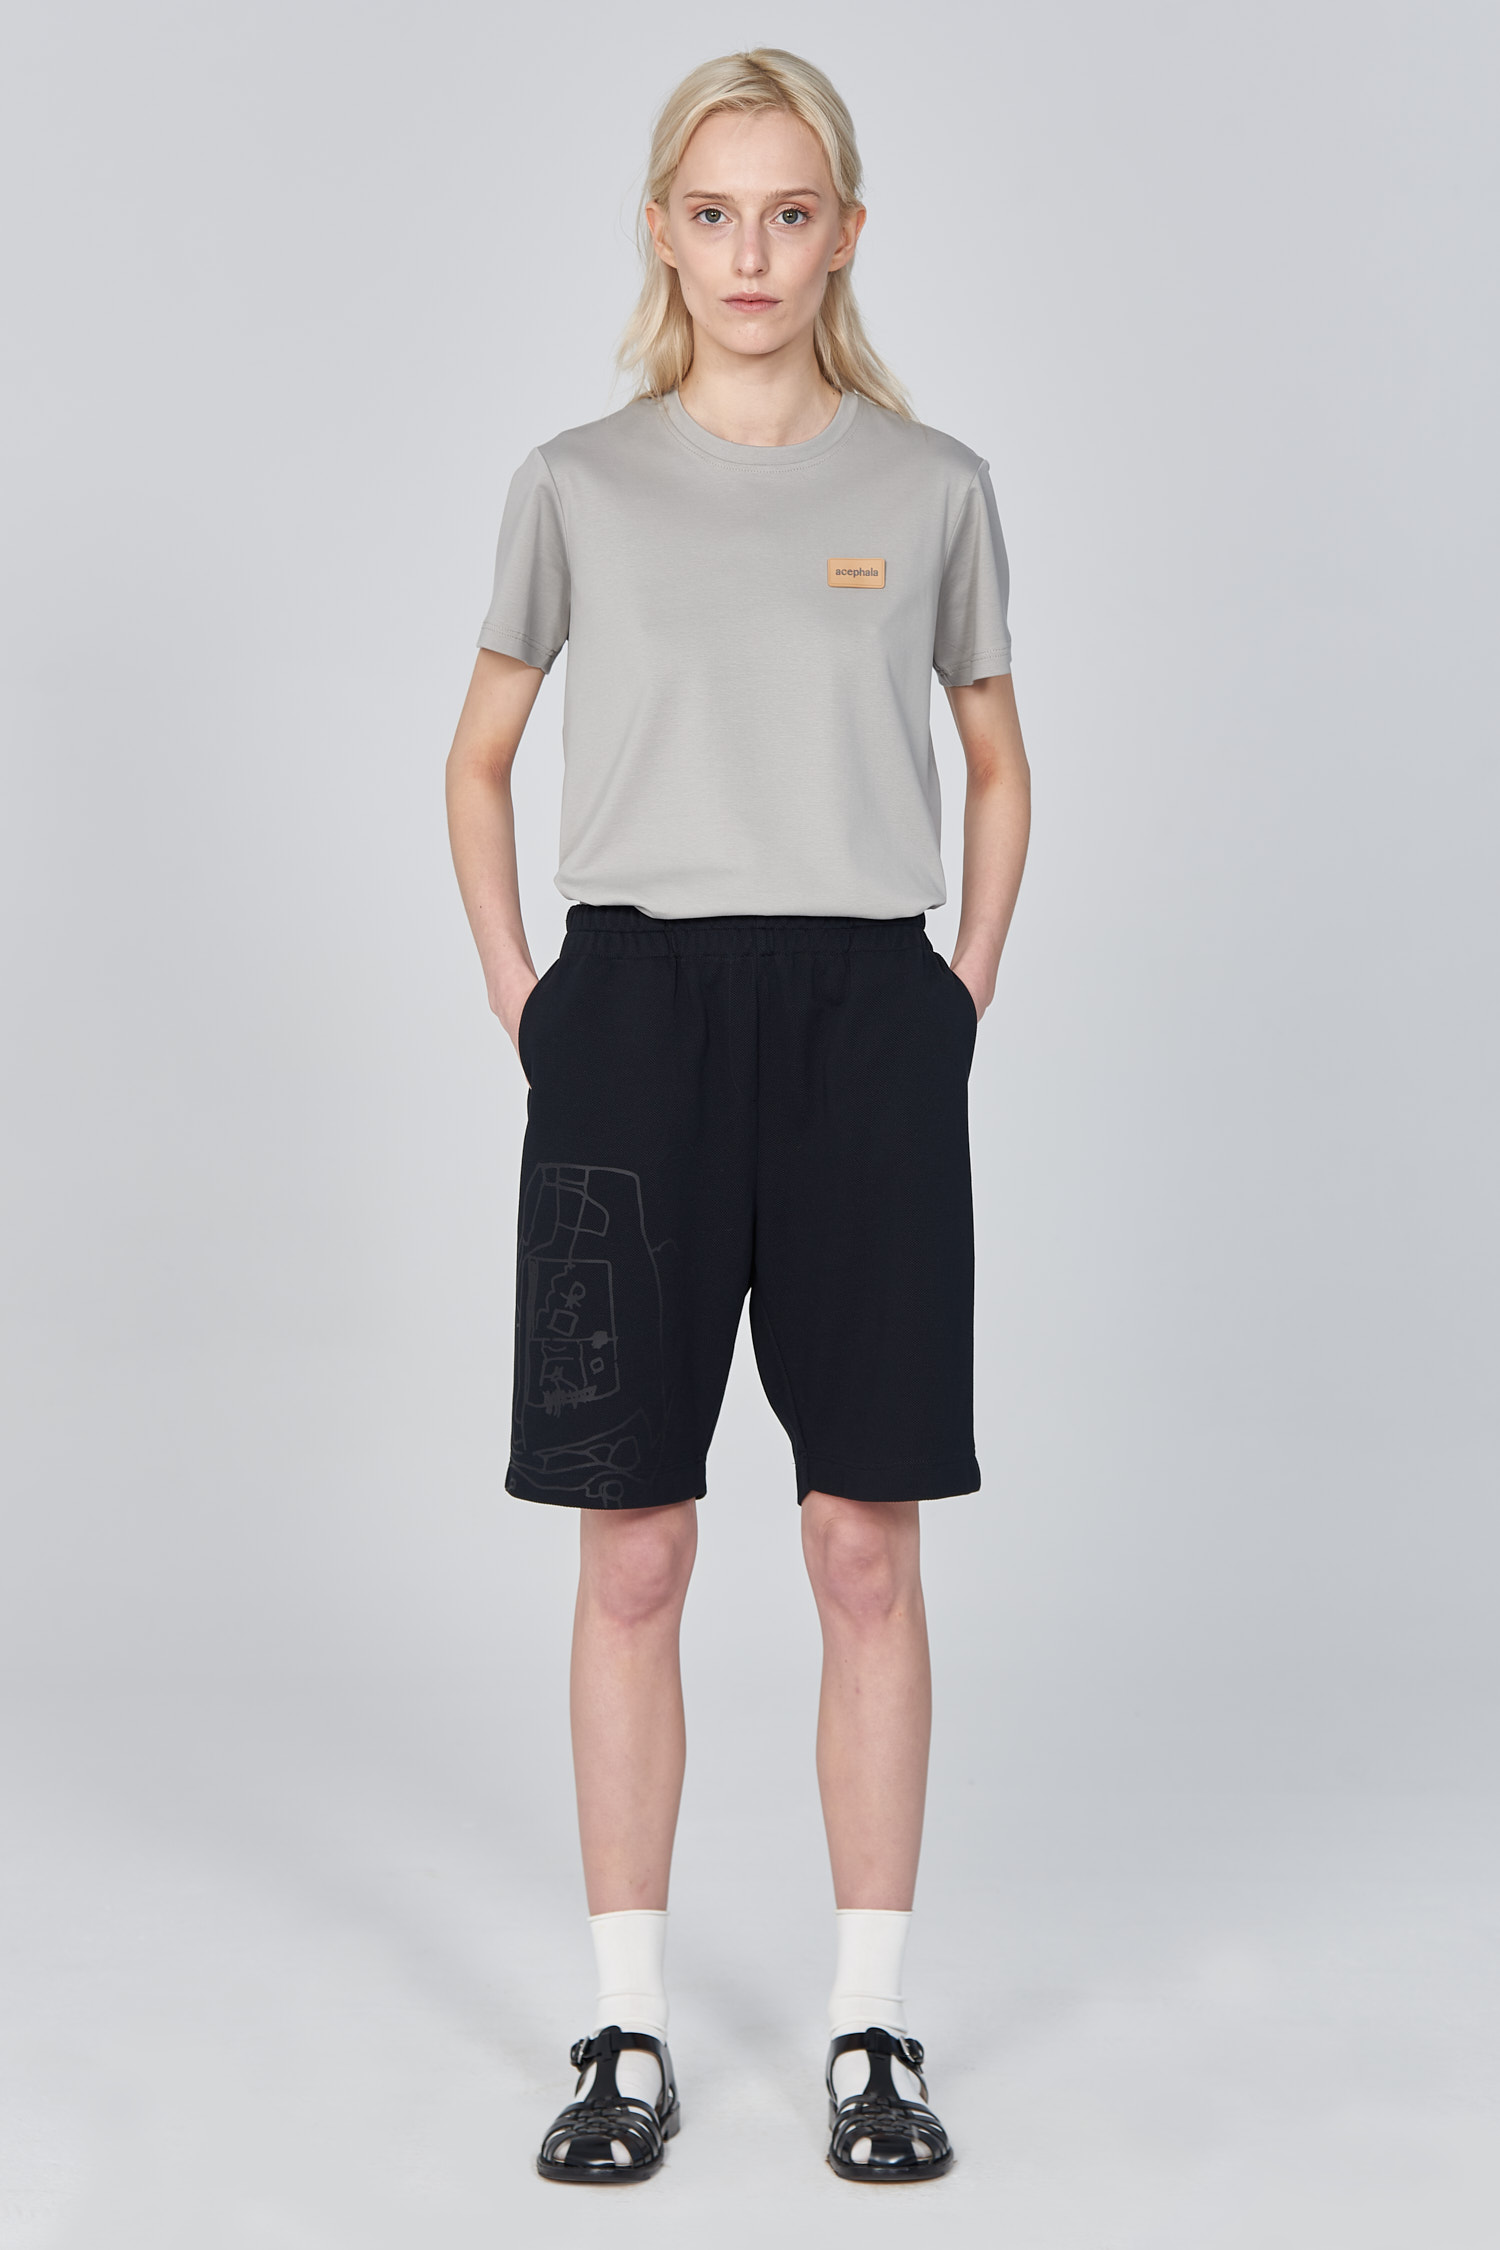 Acephala Ss21 Bermuda Shorts With Graphic Print Front Relaxed